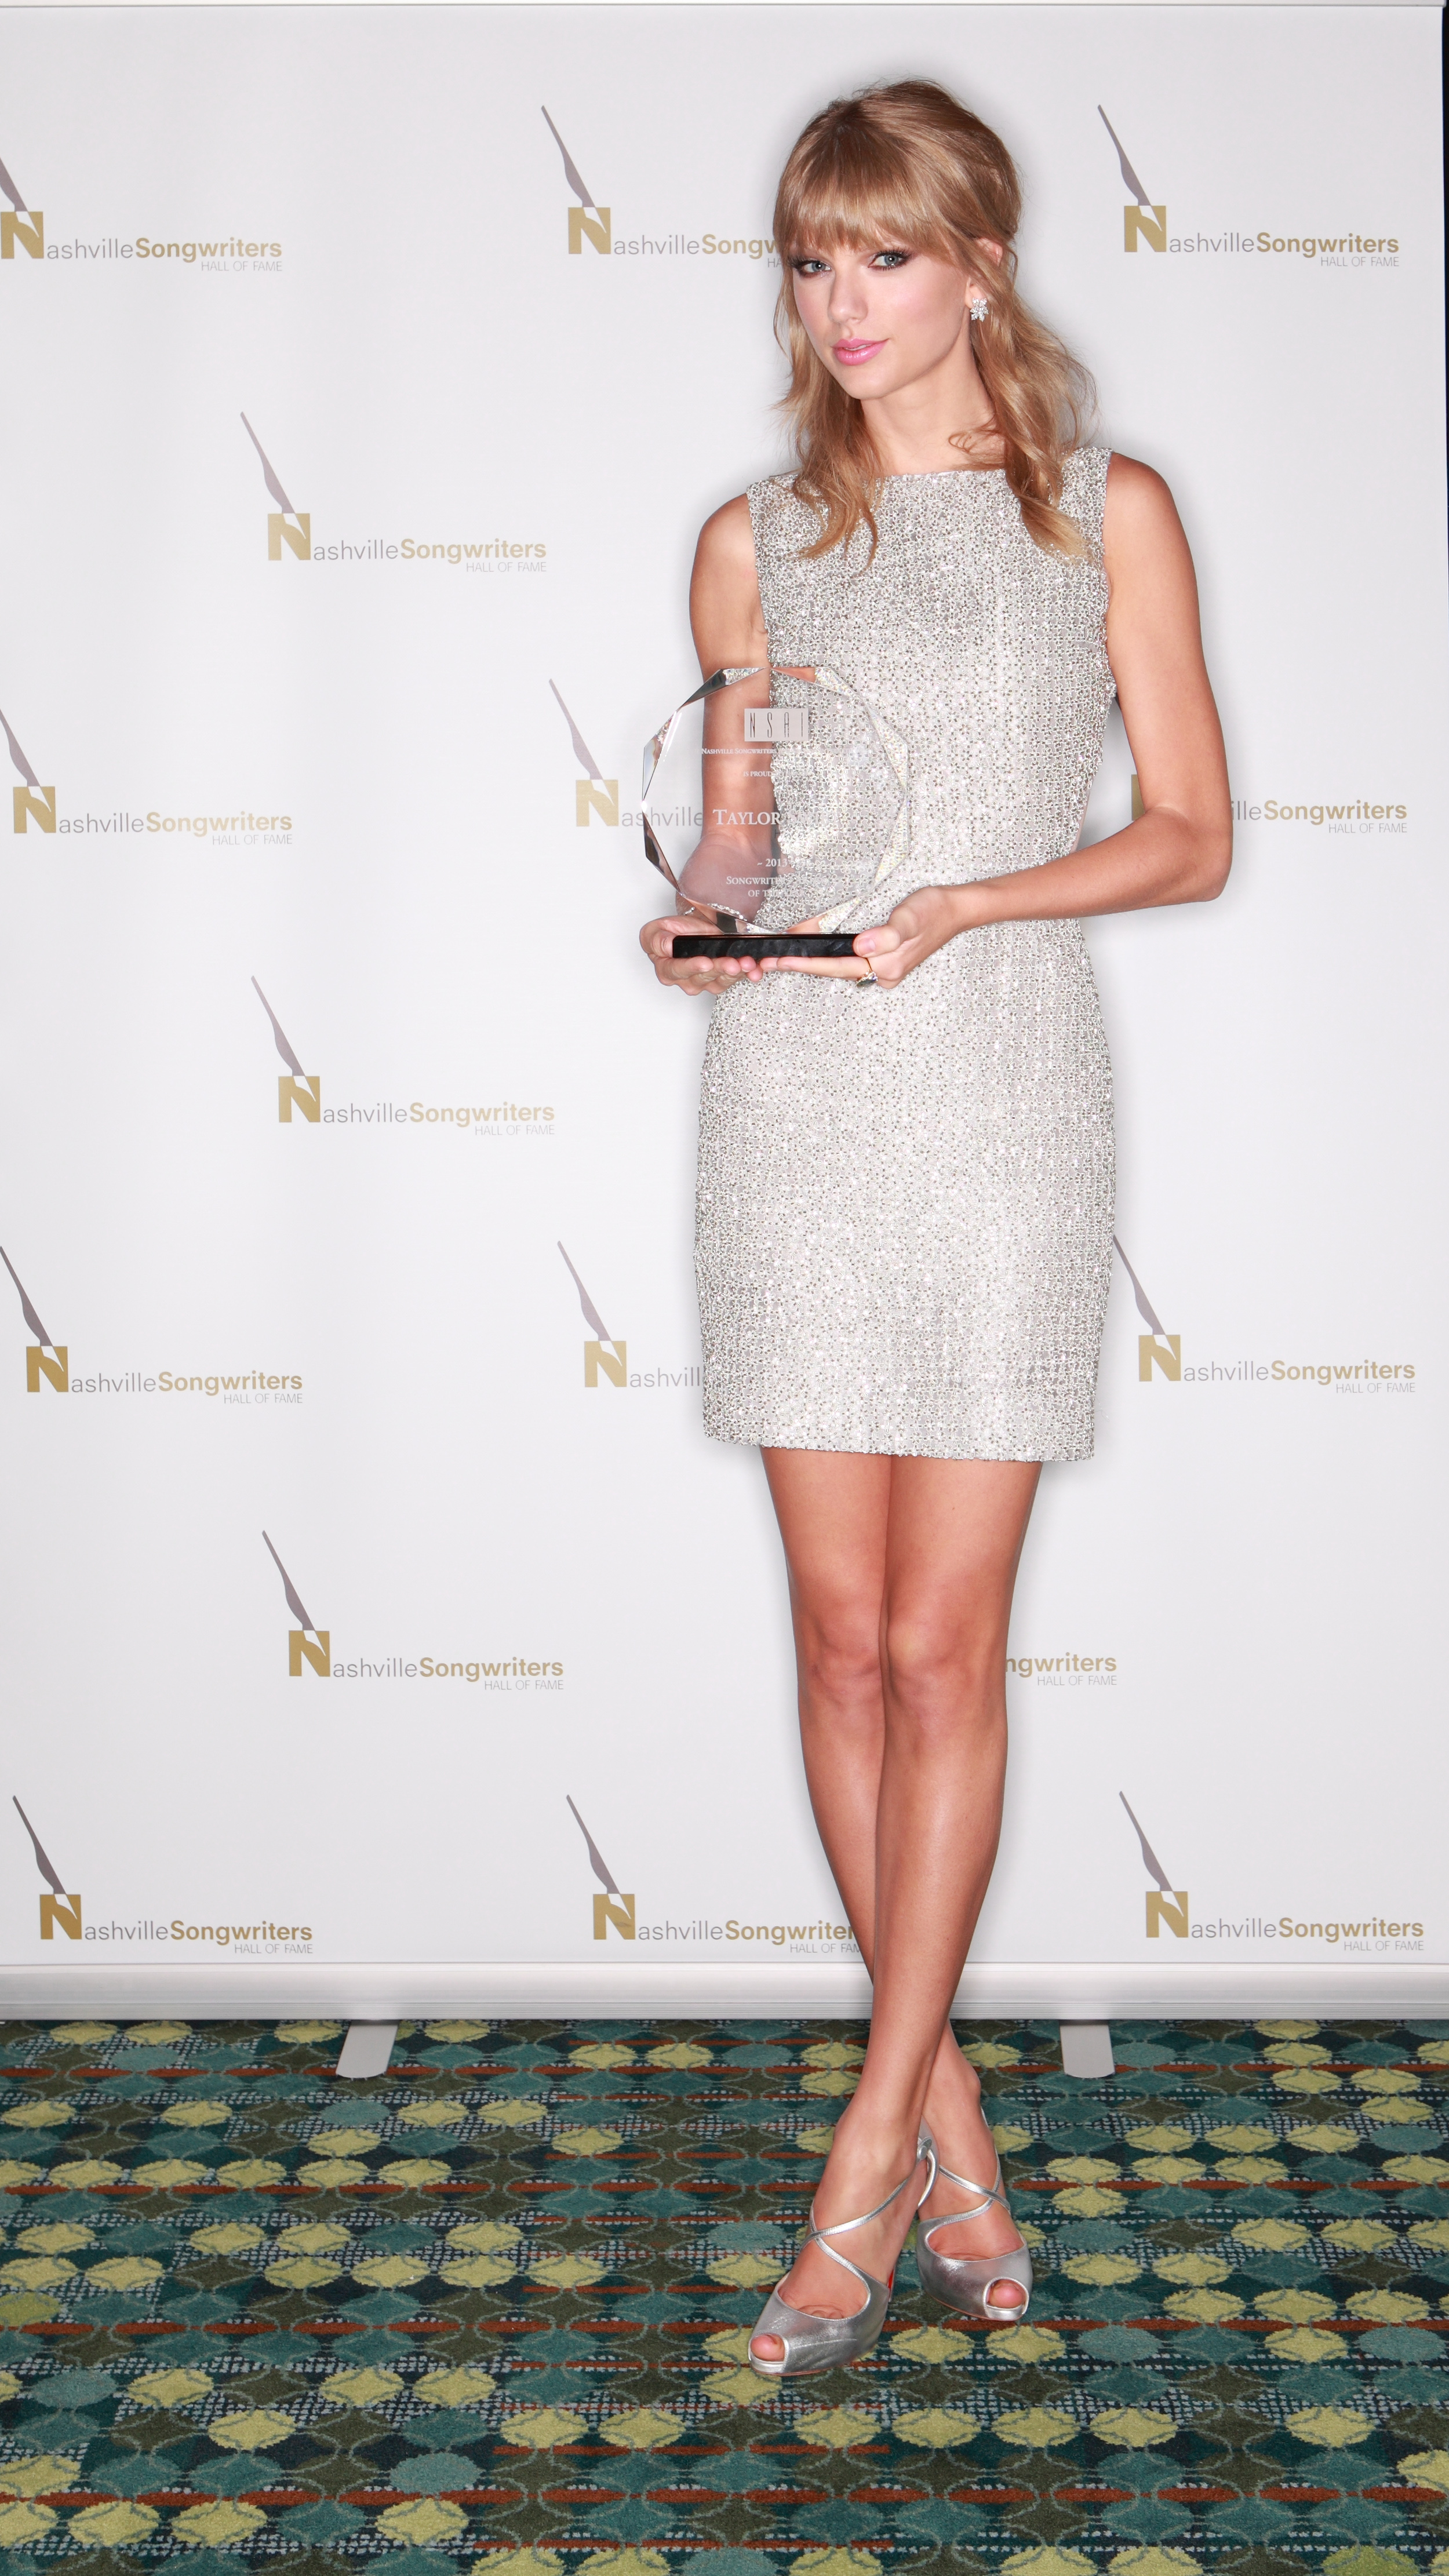 http://www.taylorpictures.net/albums/app/2013/nashvillesongwritershalloffameinductionceremony/004.jpg